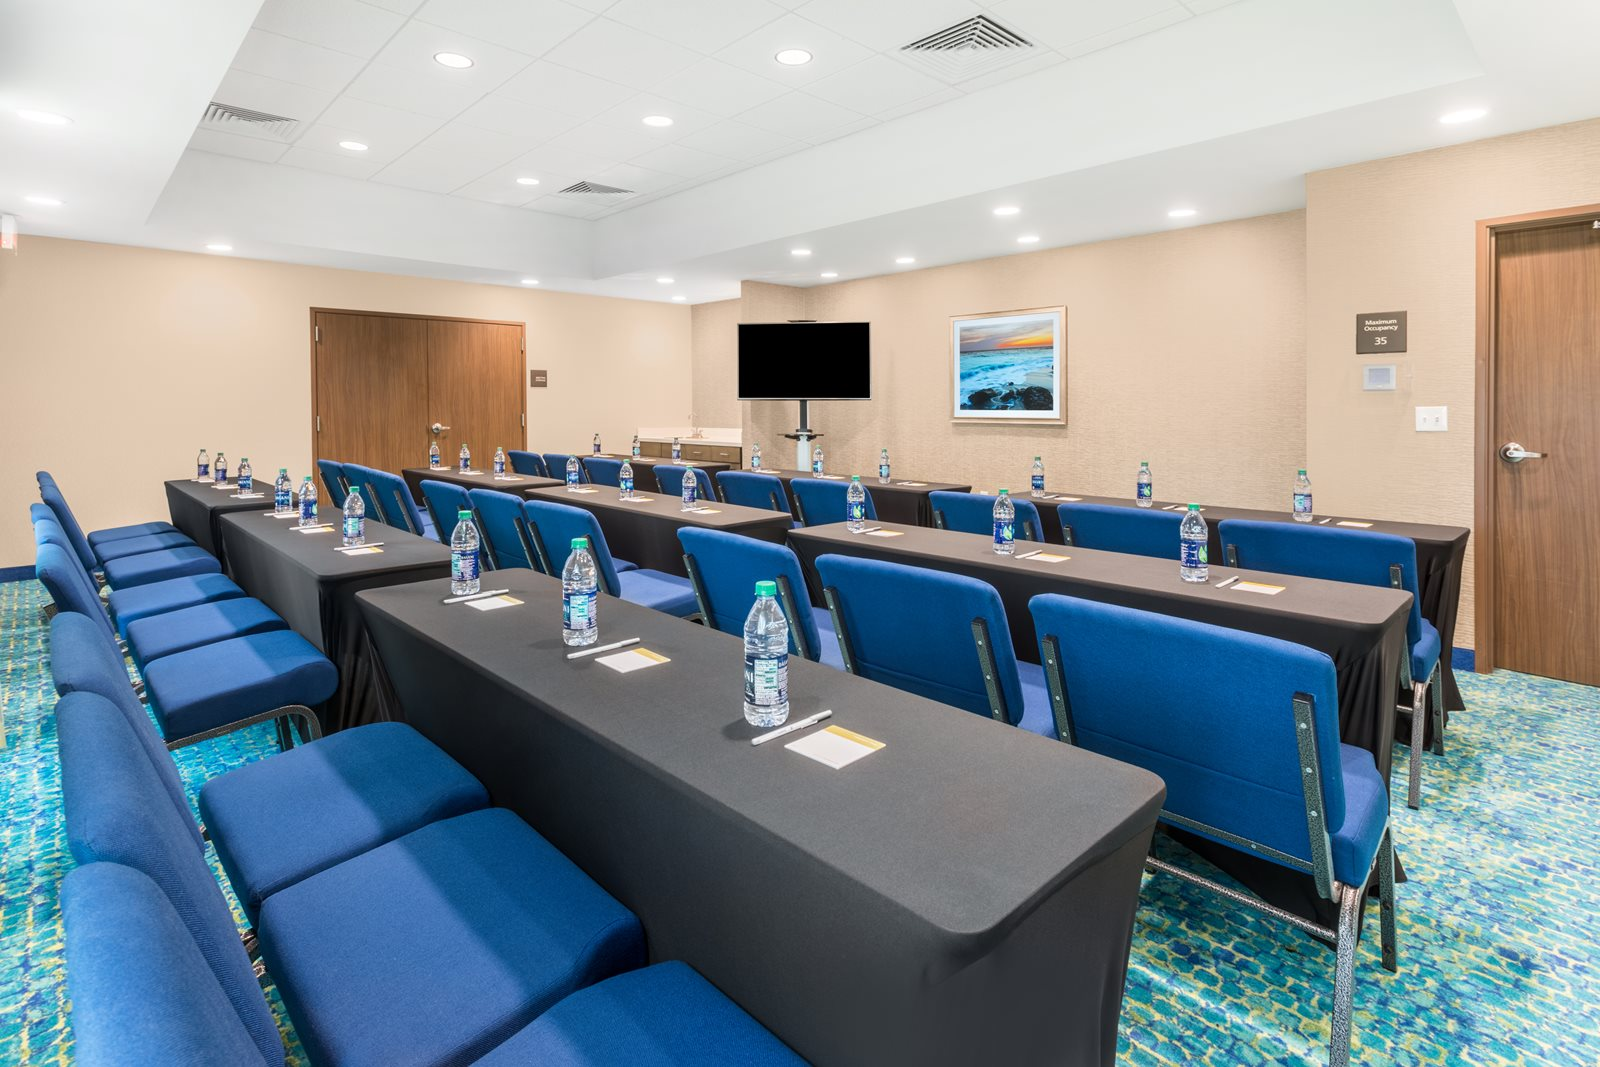 HamptonInn-MaryEstherFL-Meeting-Room.jpg